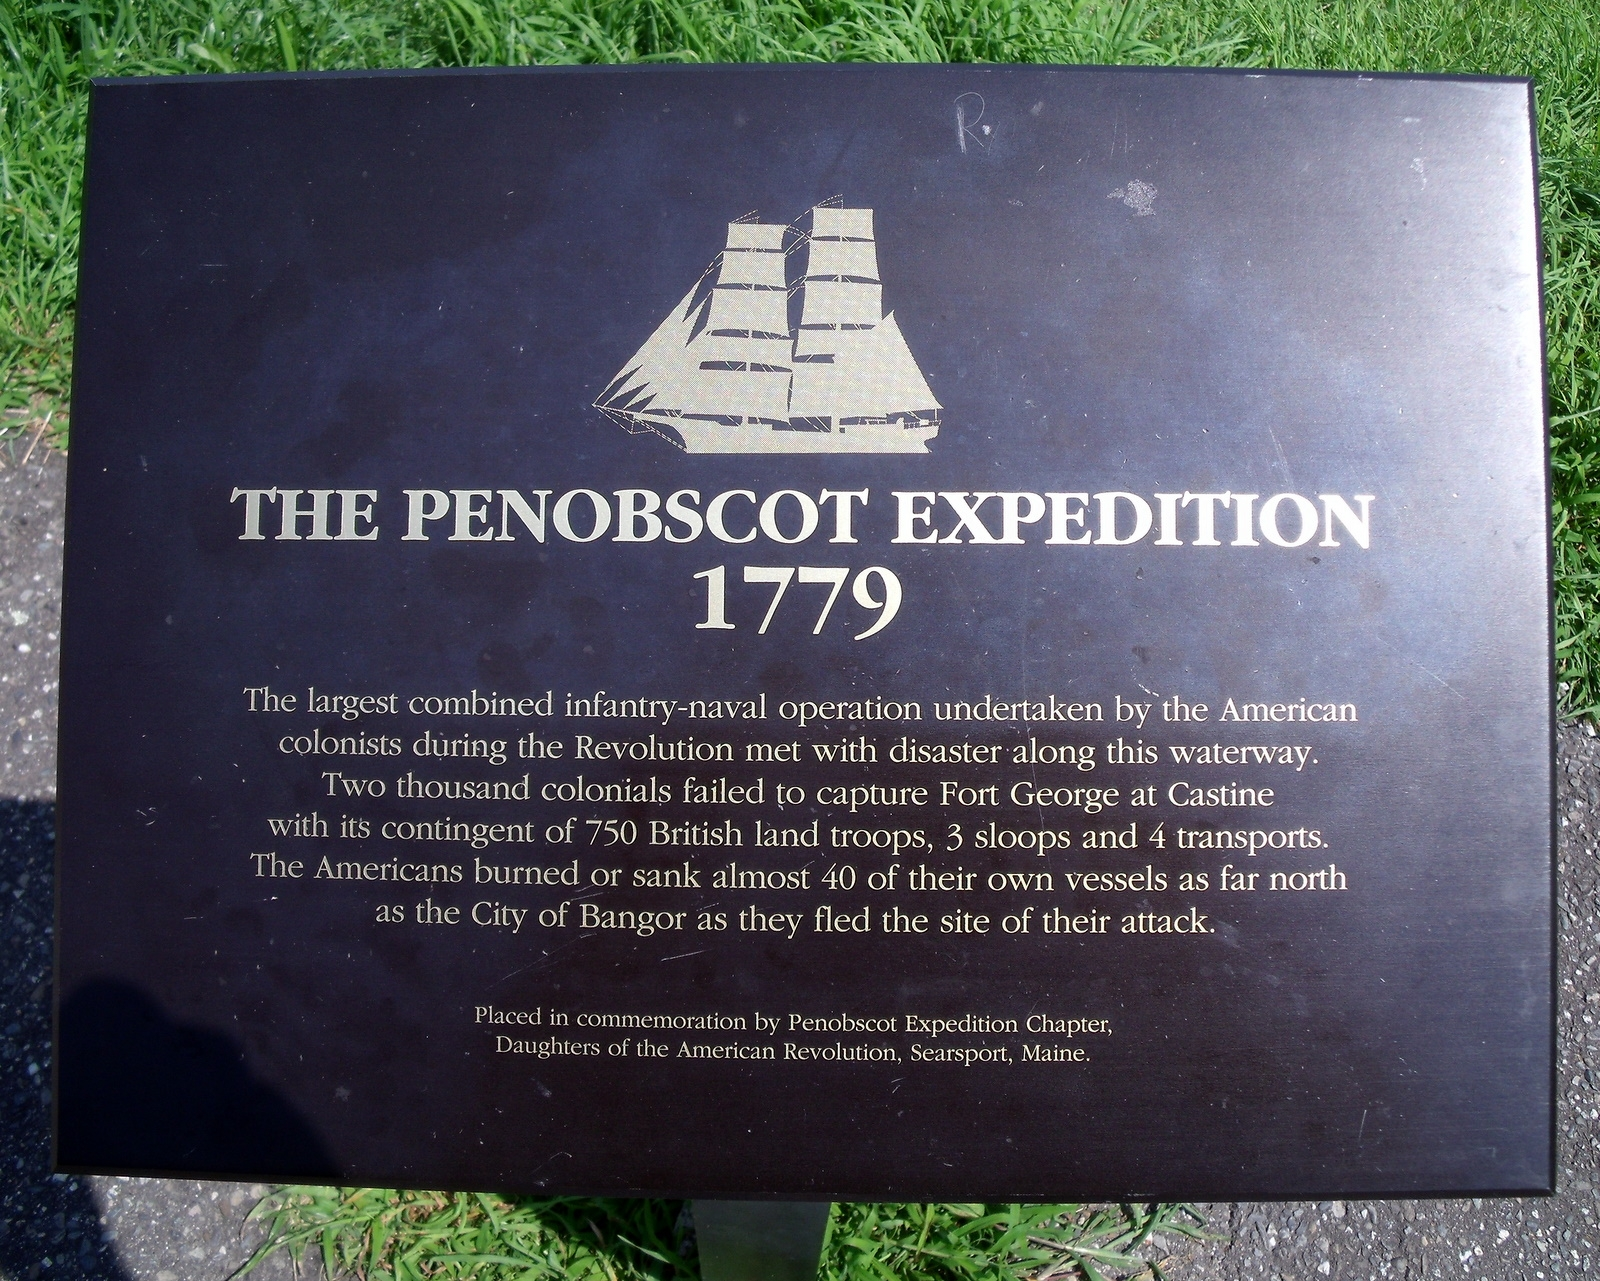 The Penobscot Expedition 1779 Marker